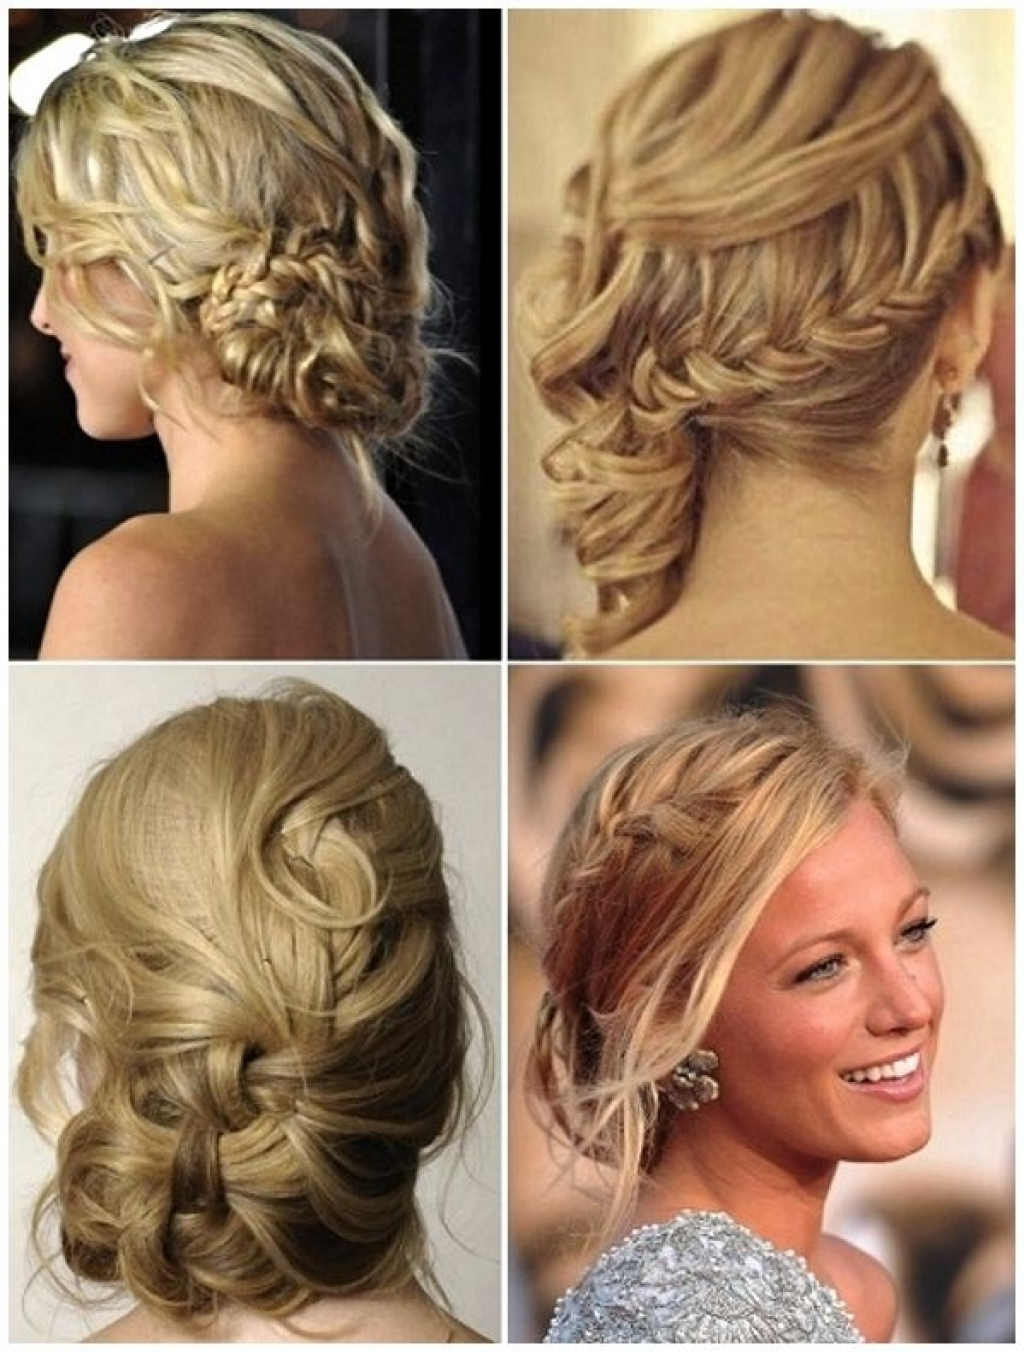 Hair Dosr Wedding Wdding Hairdos Mdium Lovely Hairstyles Updos Pertaining To Latest Easy Bridal Hairstyles For Short Hair (View 6 of 15)